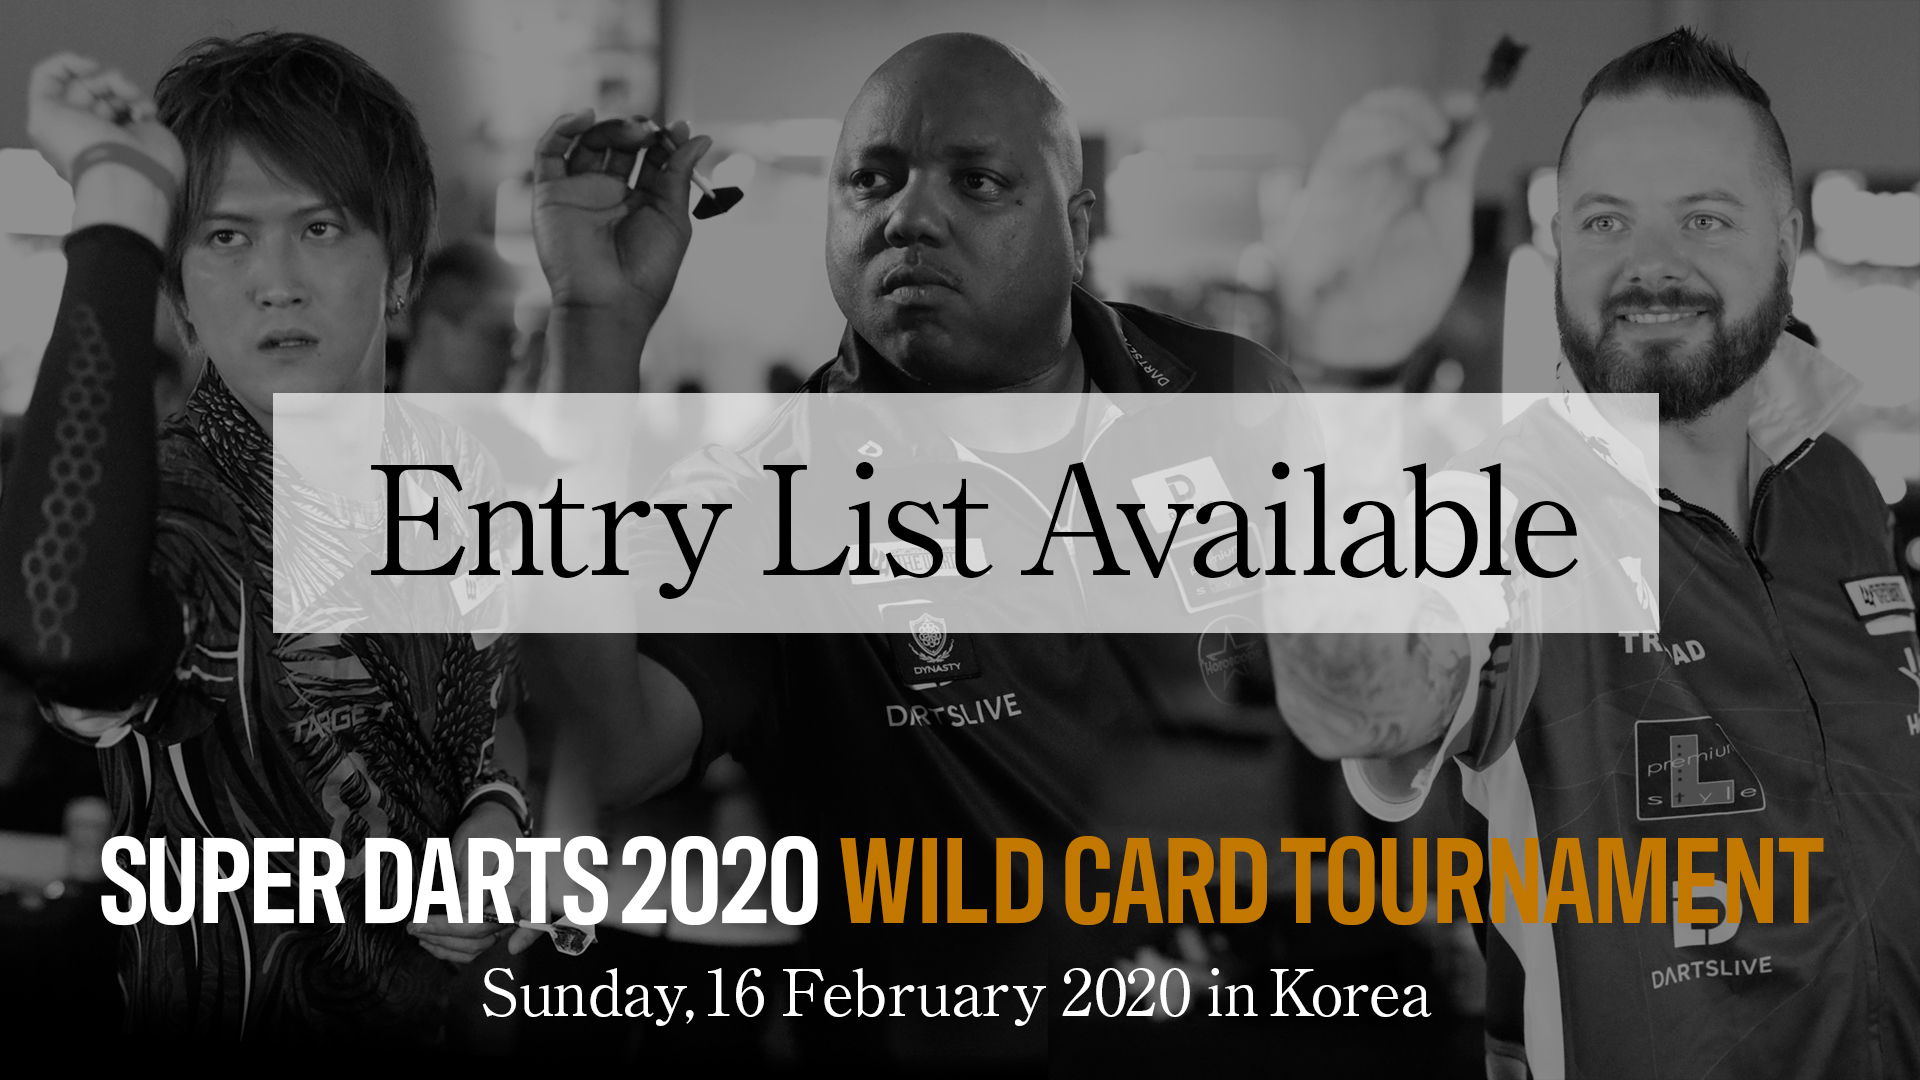 【Entry List Available】SUPER DARTS 2020 WILD CARD TOURNAMENT